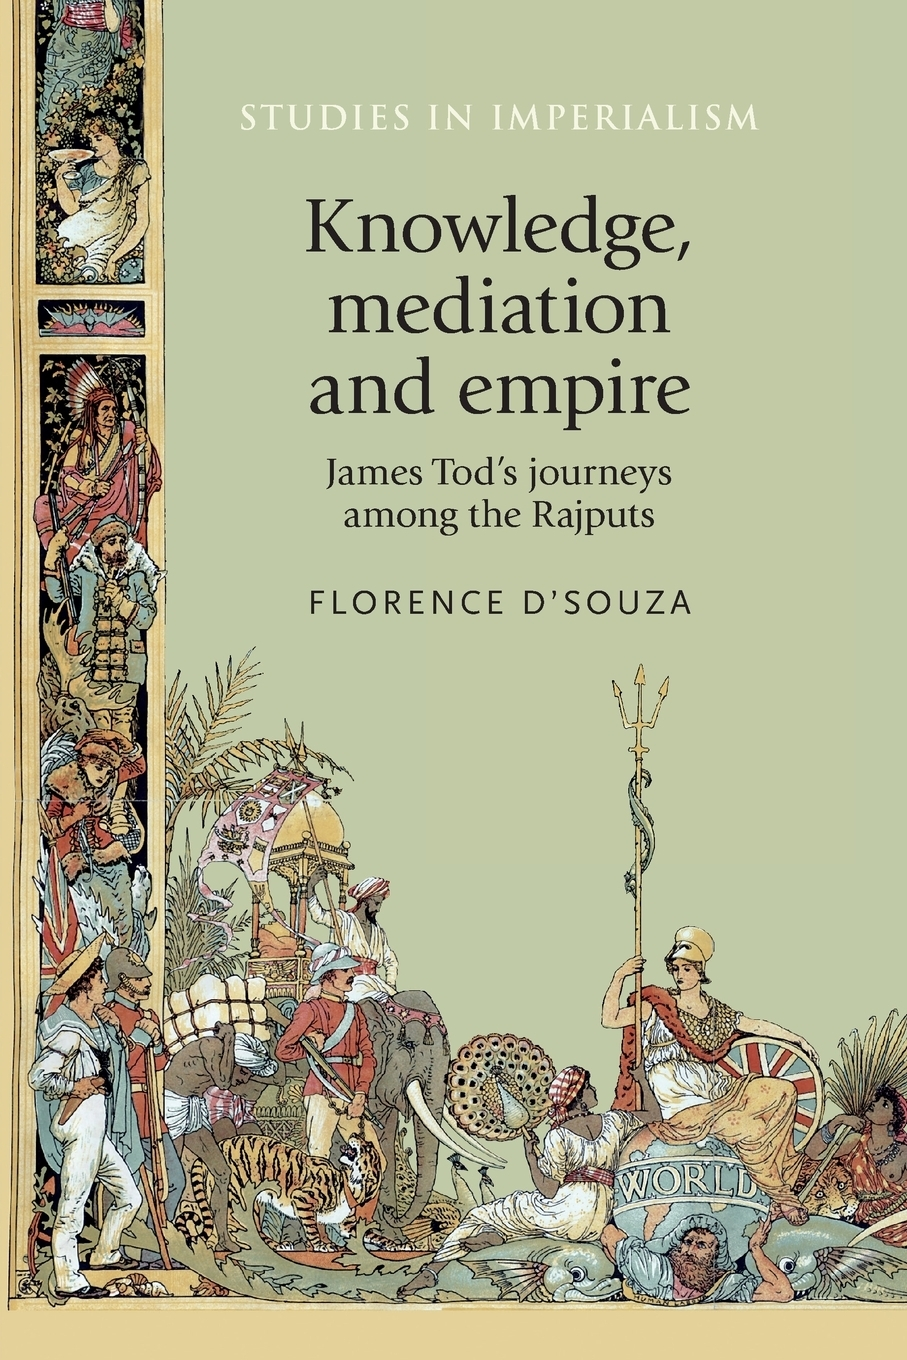 Florence D'Souza. Knowledge, mediation and empire. James Tod's journeys among the Rajputs